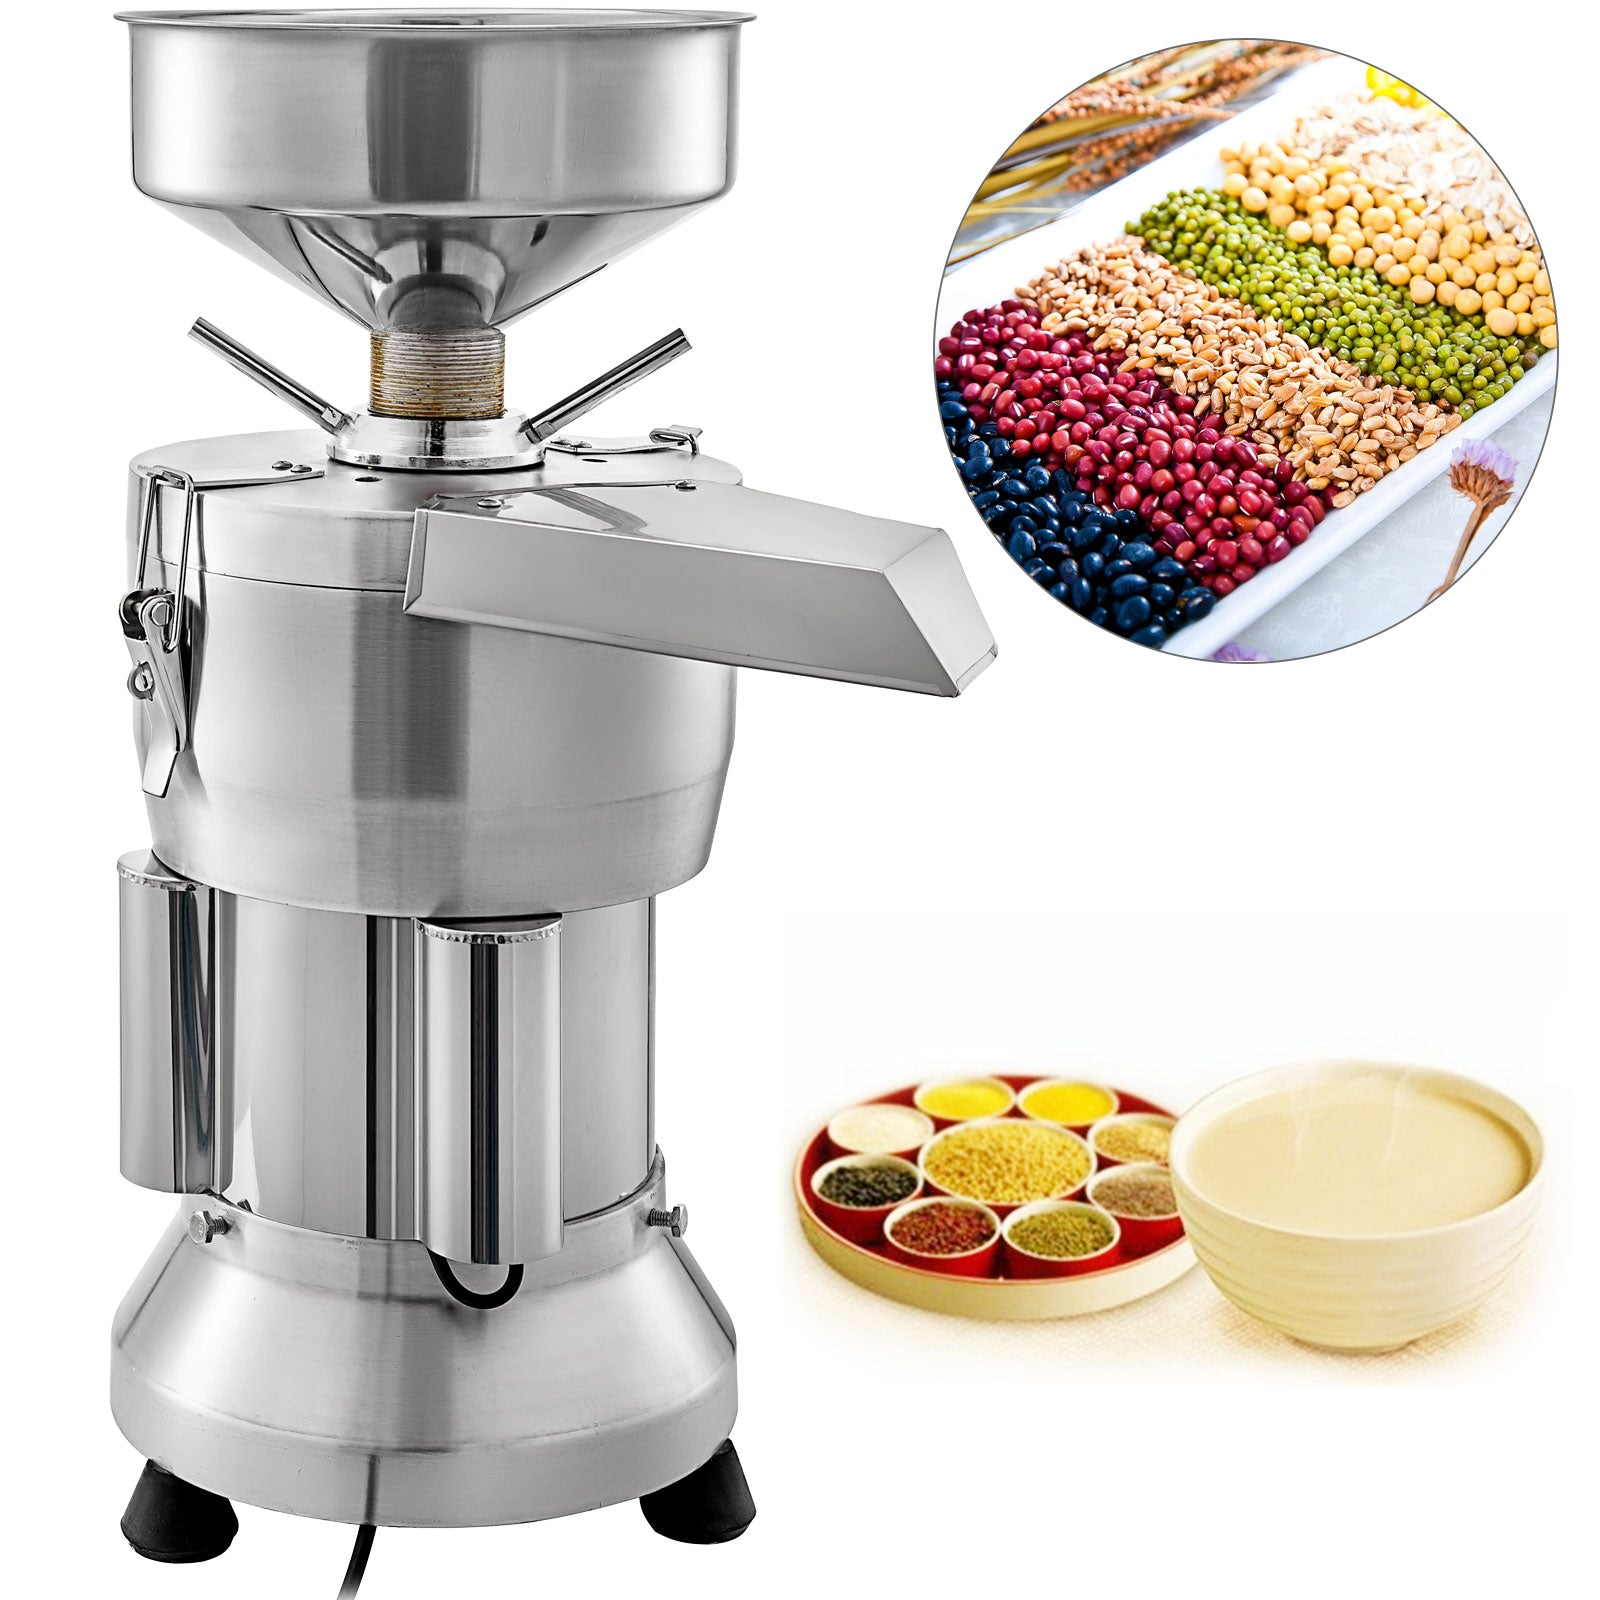 Soybean Grinding Machine Soymilk Machine Soy Bean Pulping Milk 70kg/h 1800w